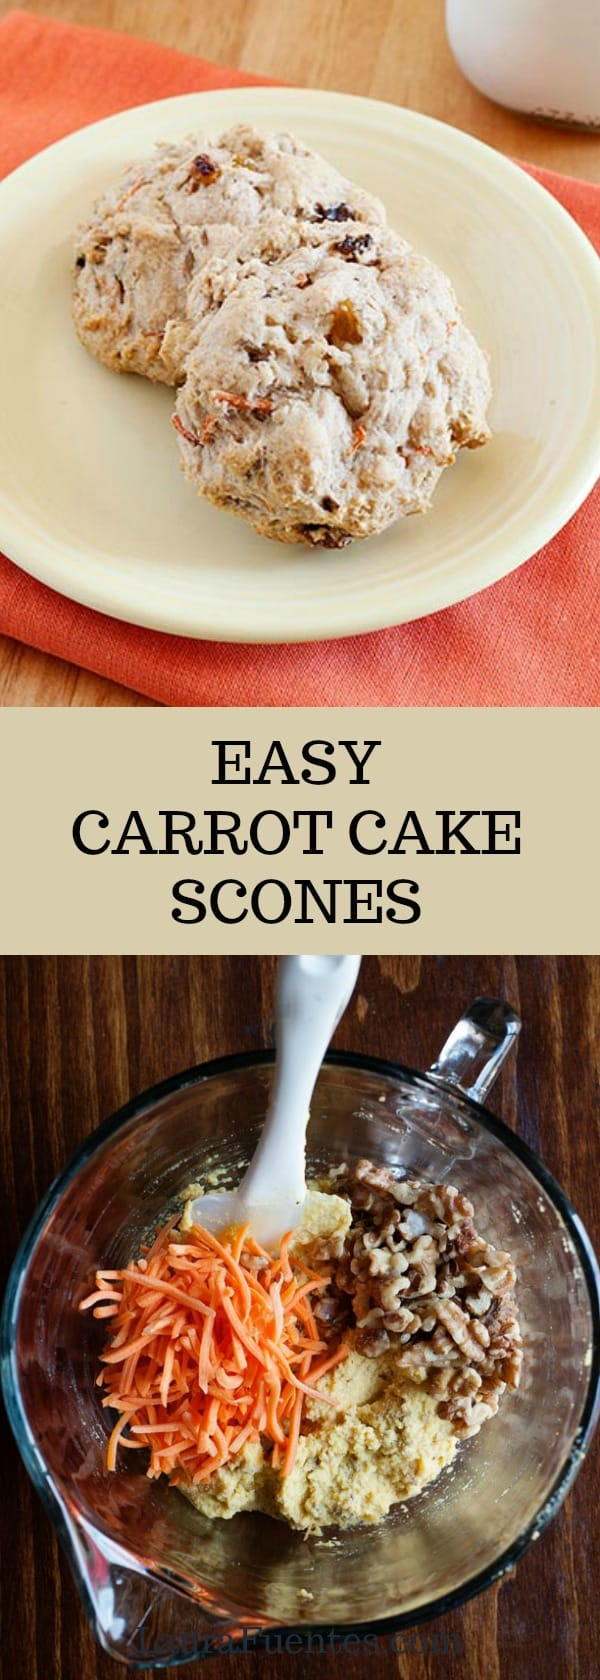 Easy carrot cake scones? Yes please! Everything you love about carrot cake now portable.